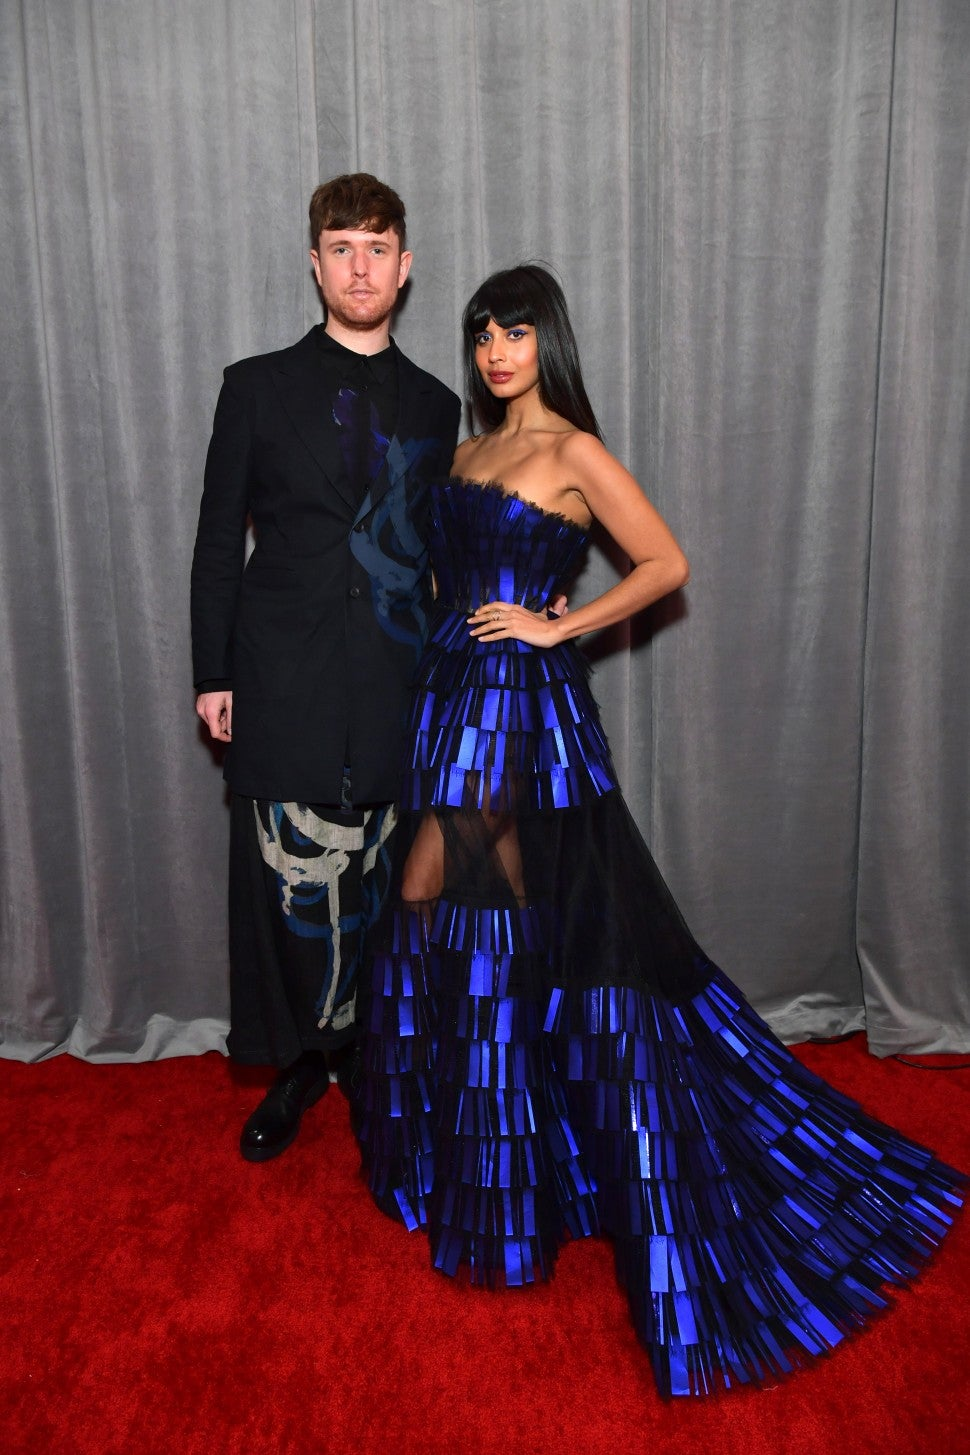 James Blake and Jameela Jamil at the 62nd Annual GRAMMY Awards